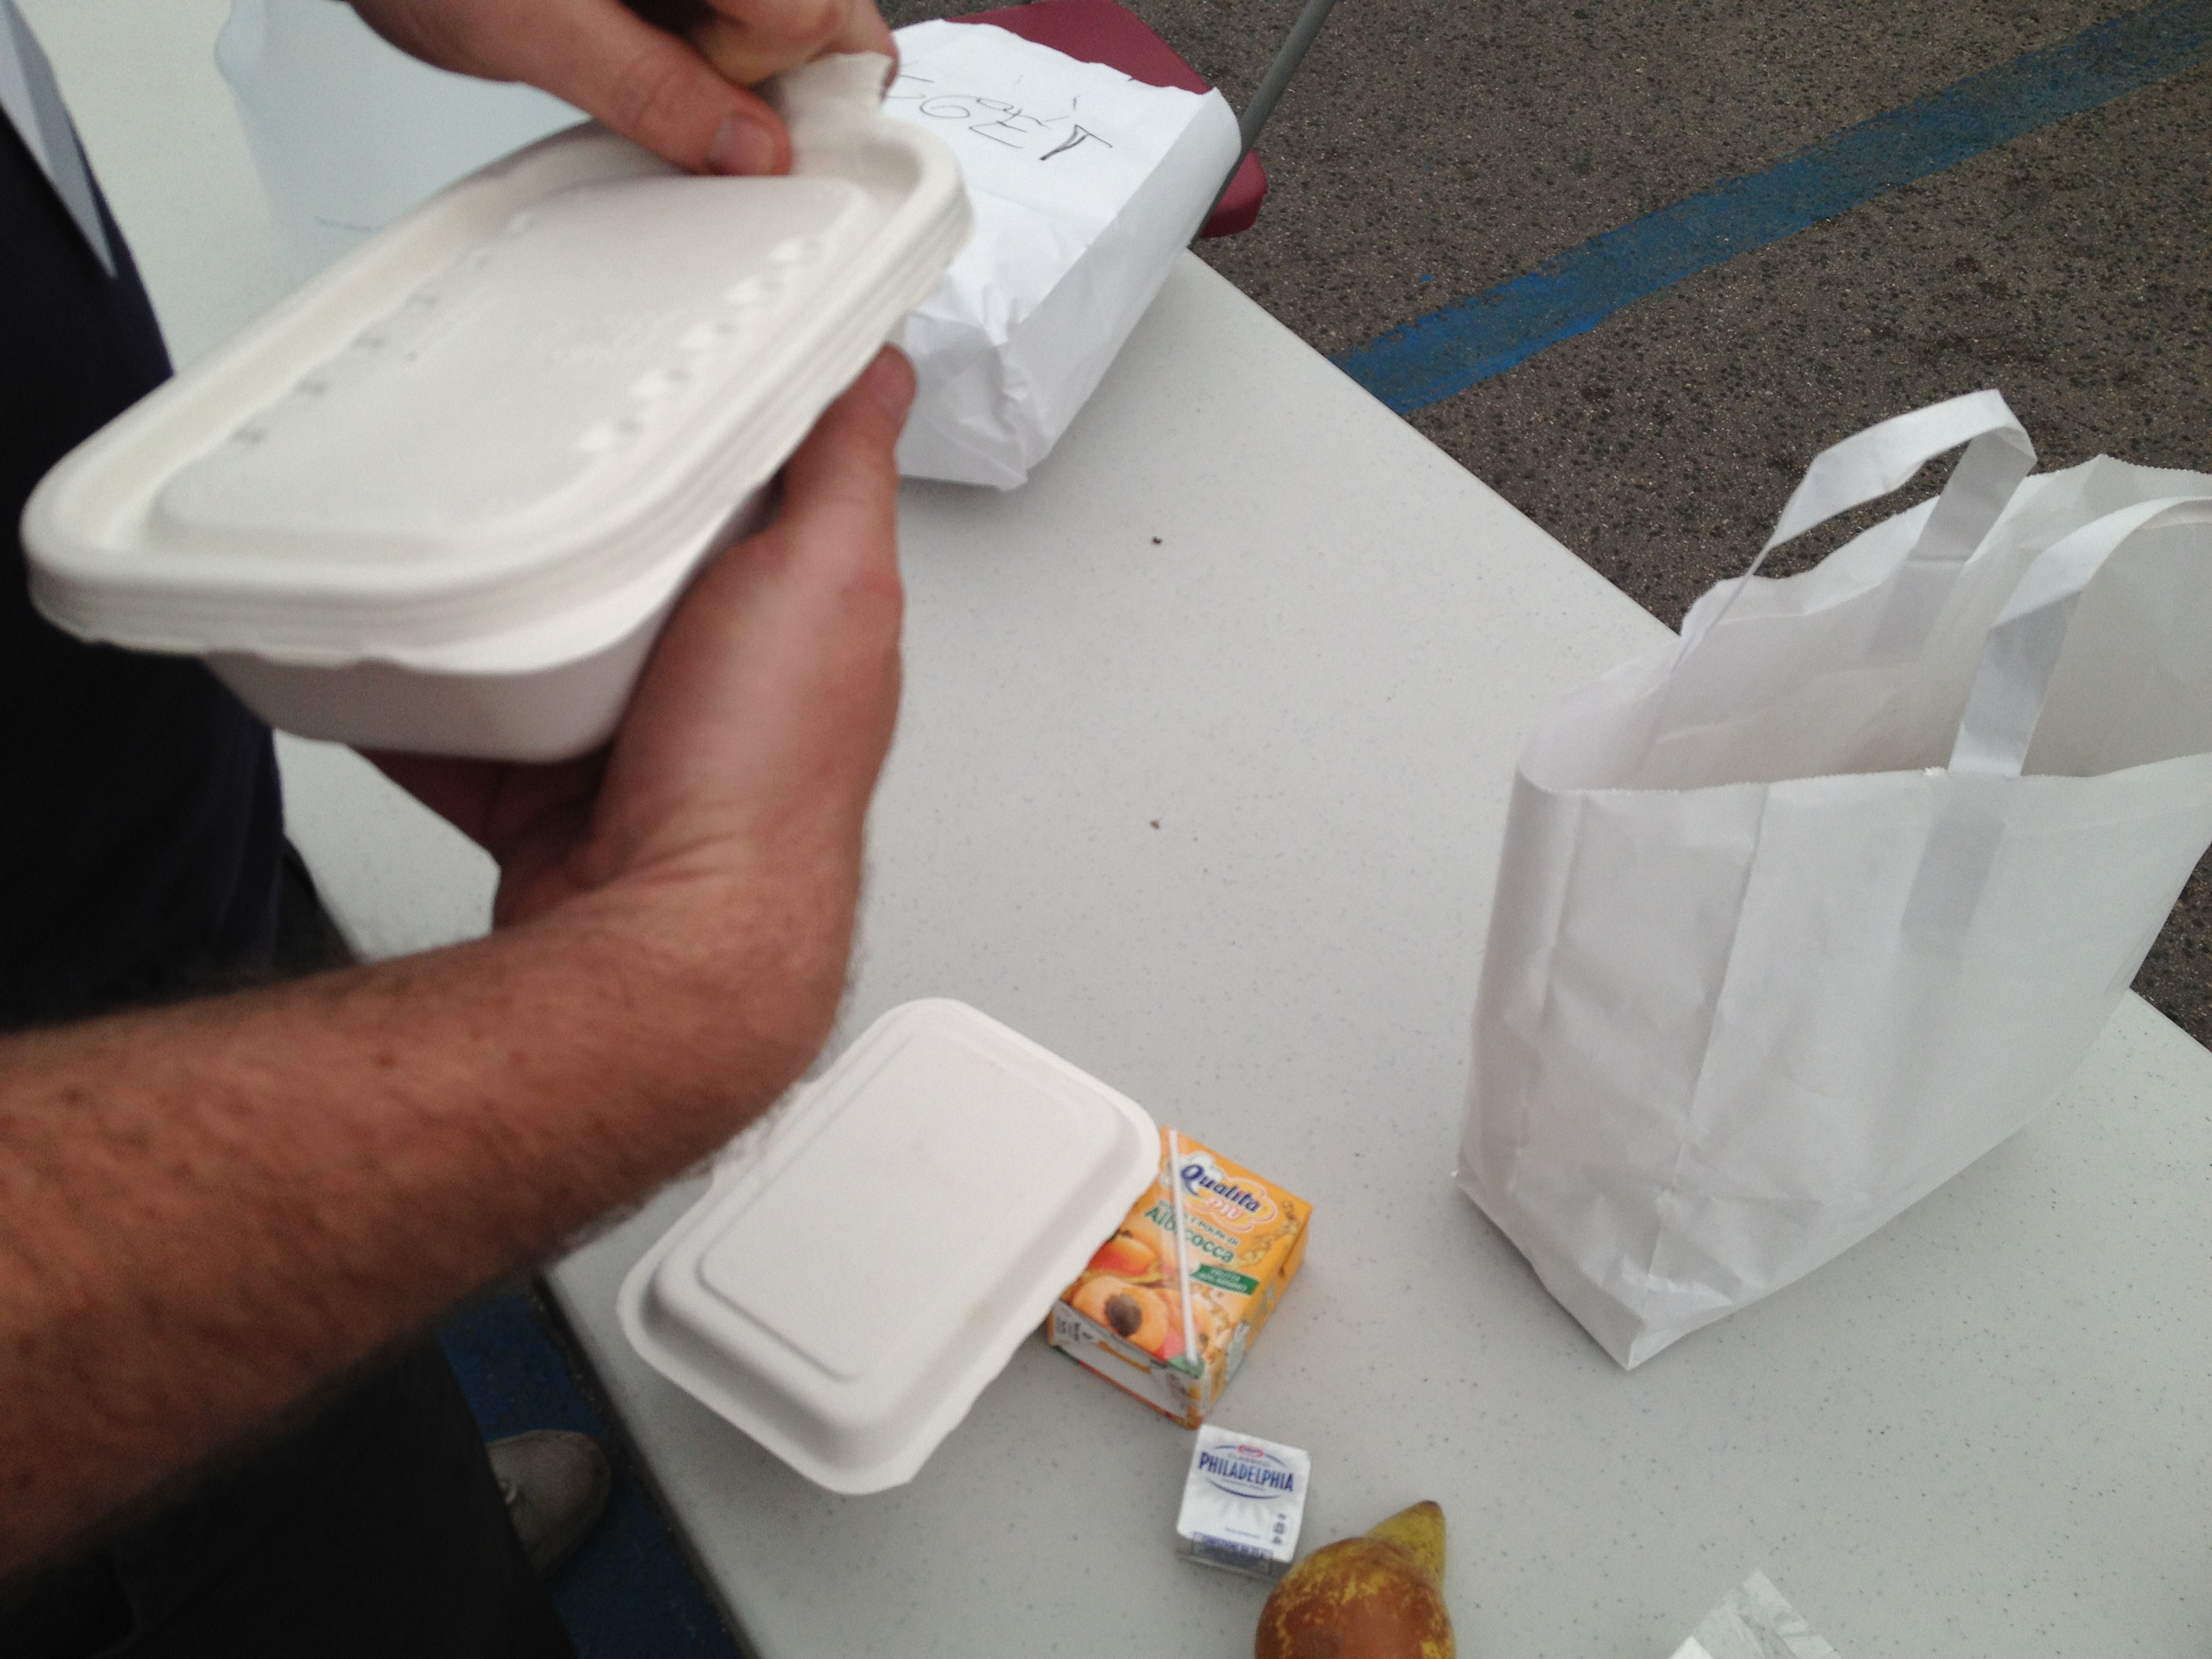 Biodegradable lunches